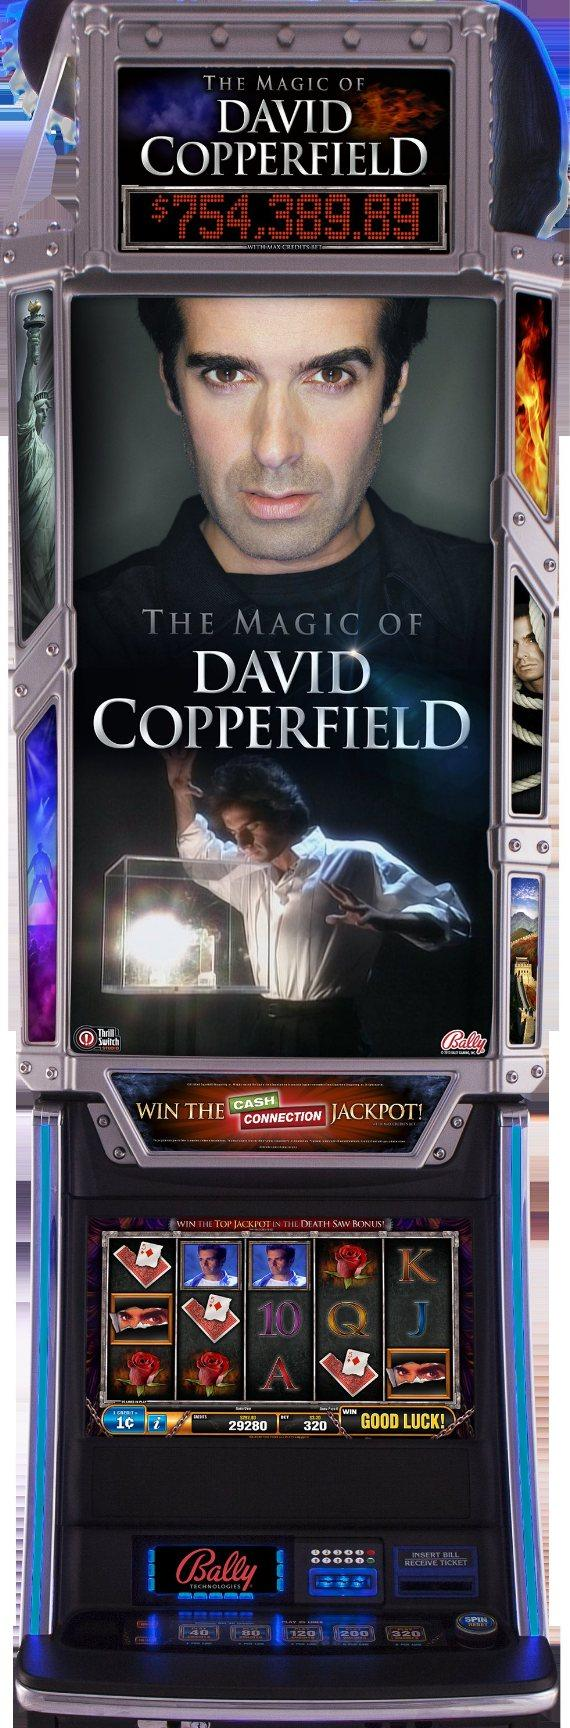 Bally Technologies slot machine The Magic of David Copperfield